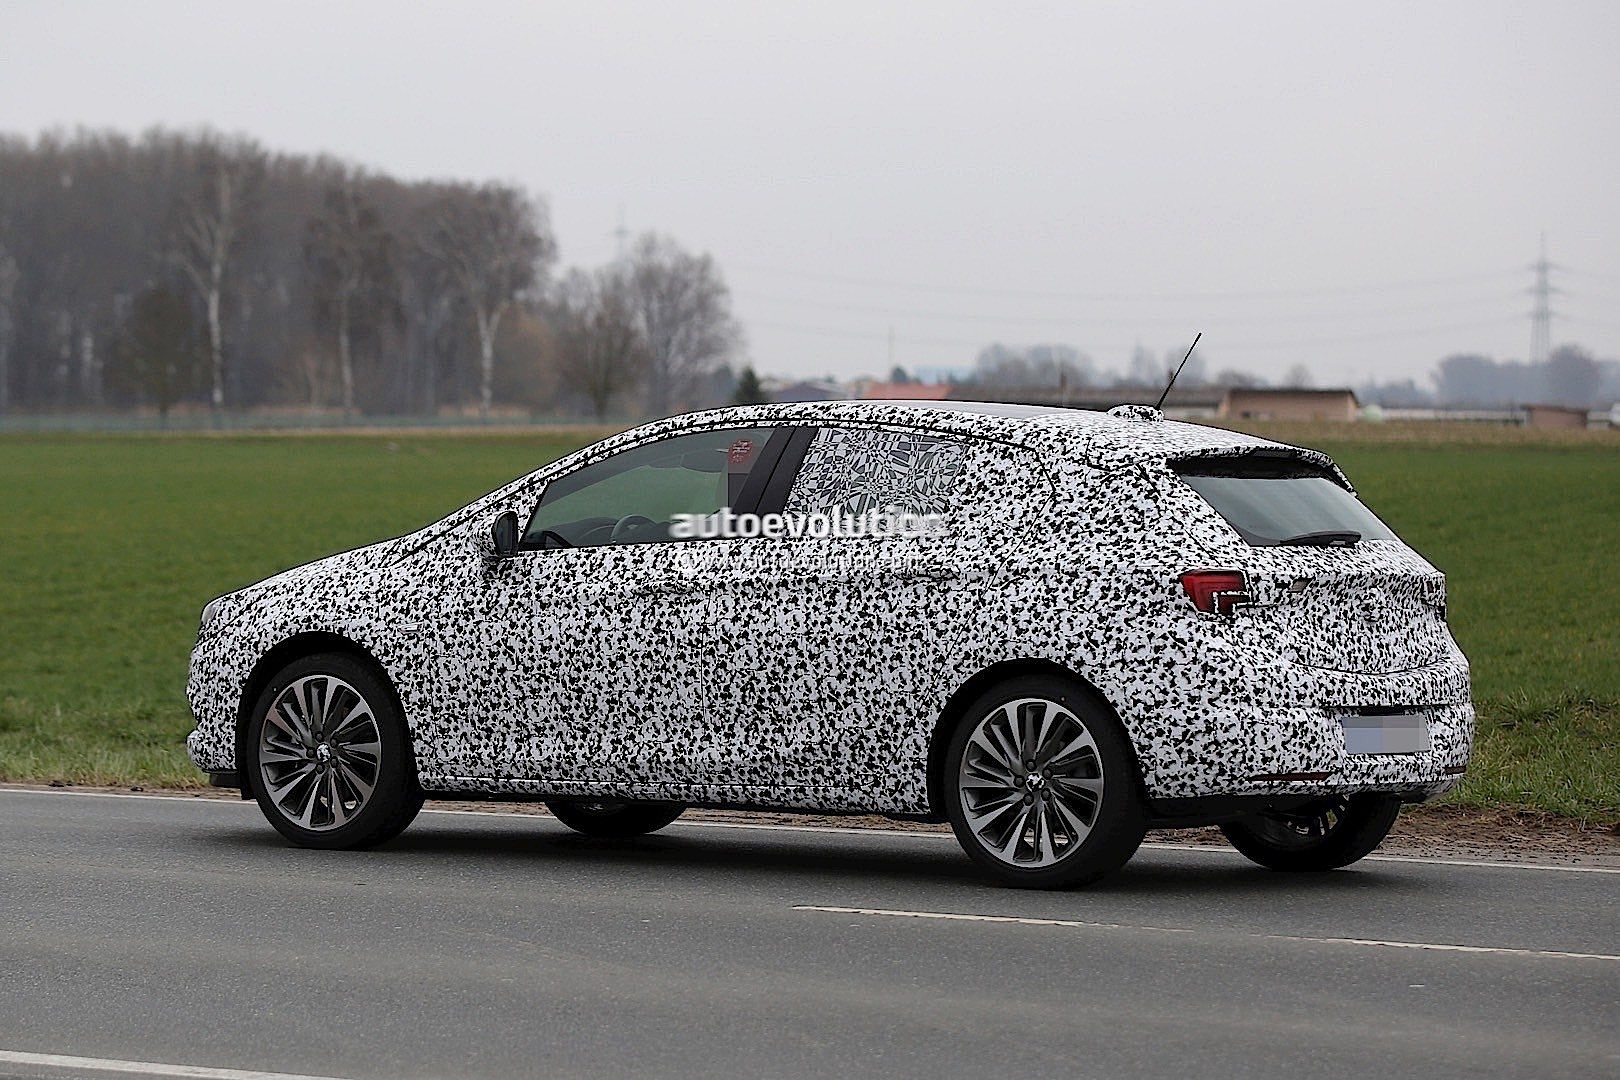 2015 Opel Vauxhall Astra K Spied Again With Less Camo